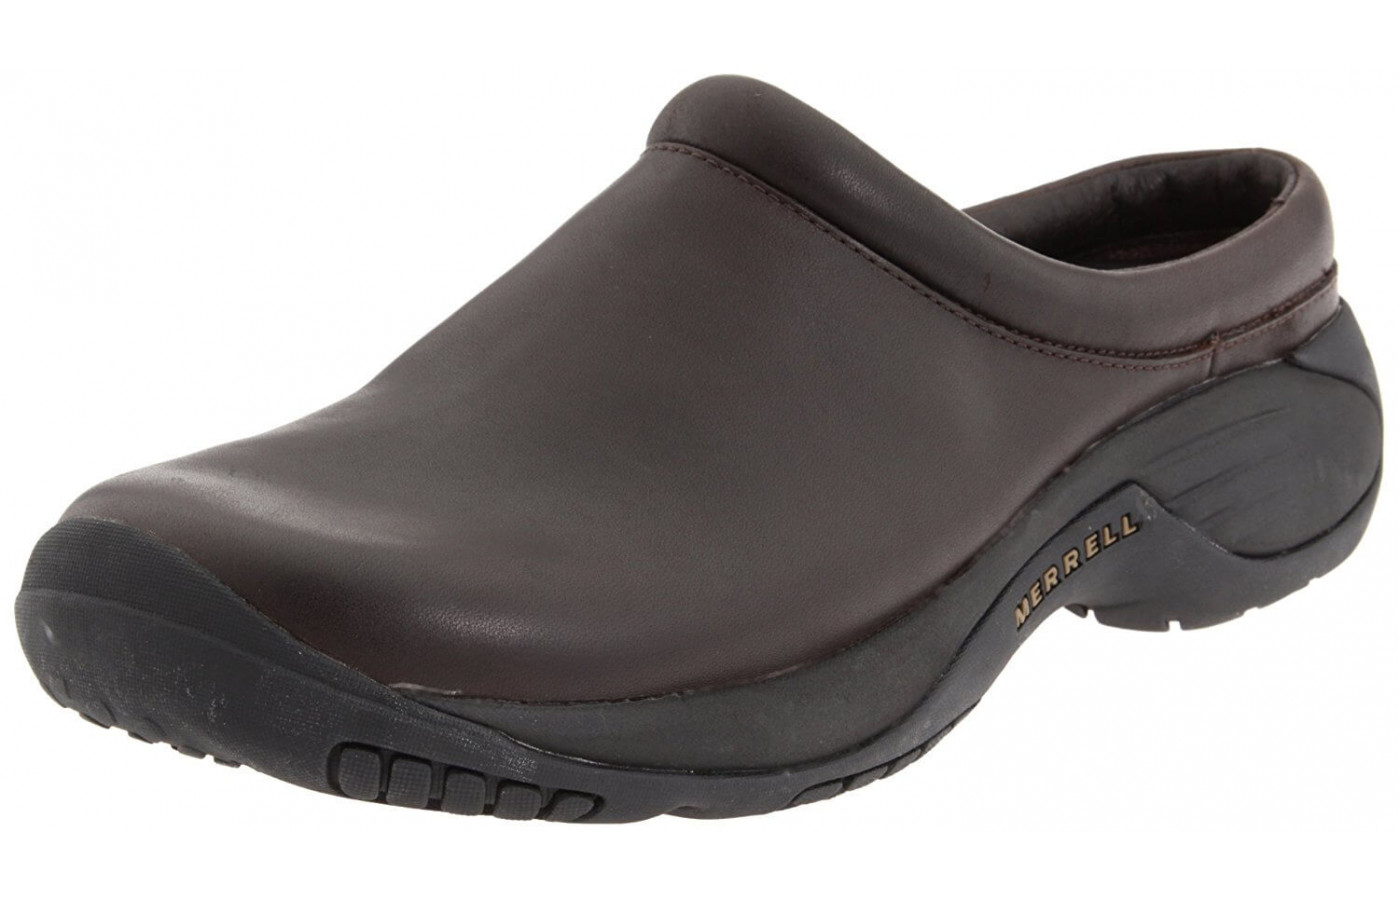 The Merrell Encore Gust has an arch shank for support